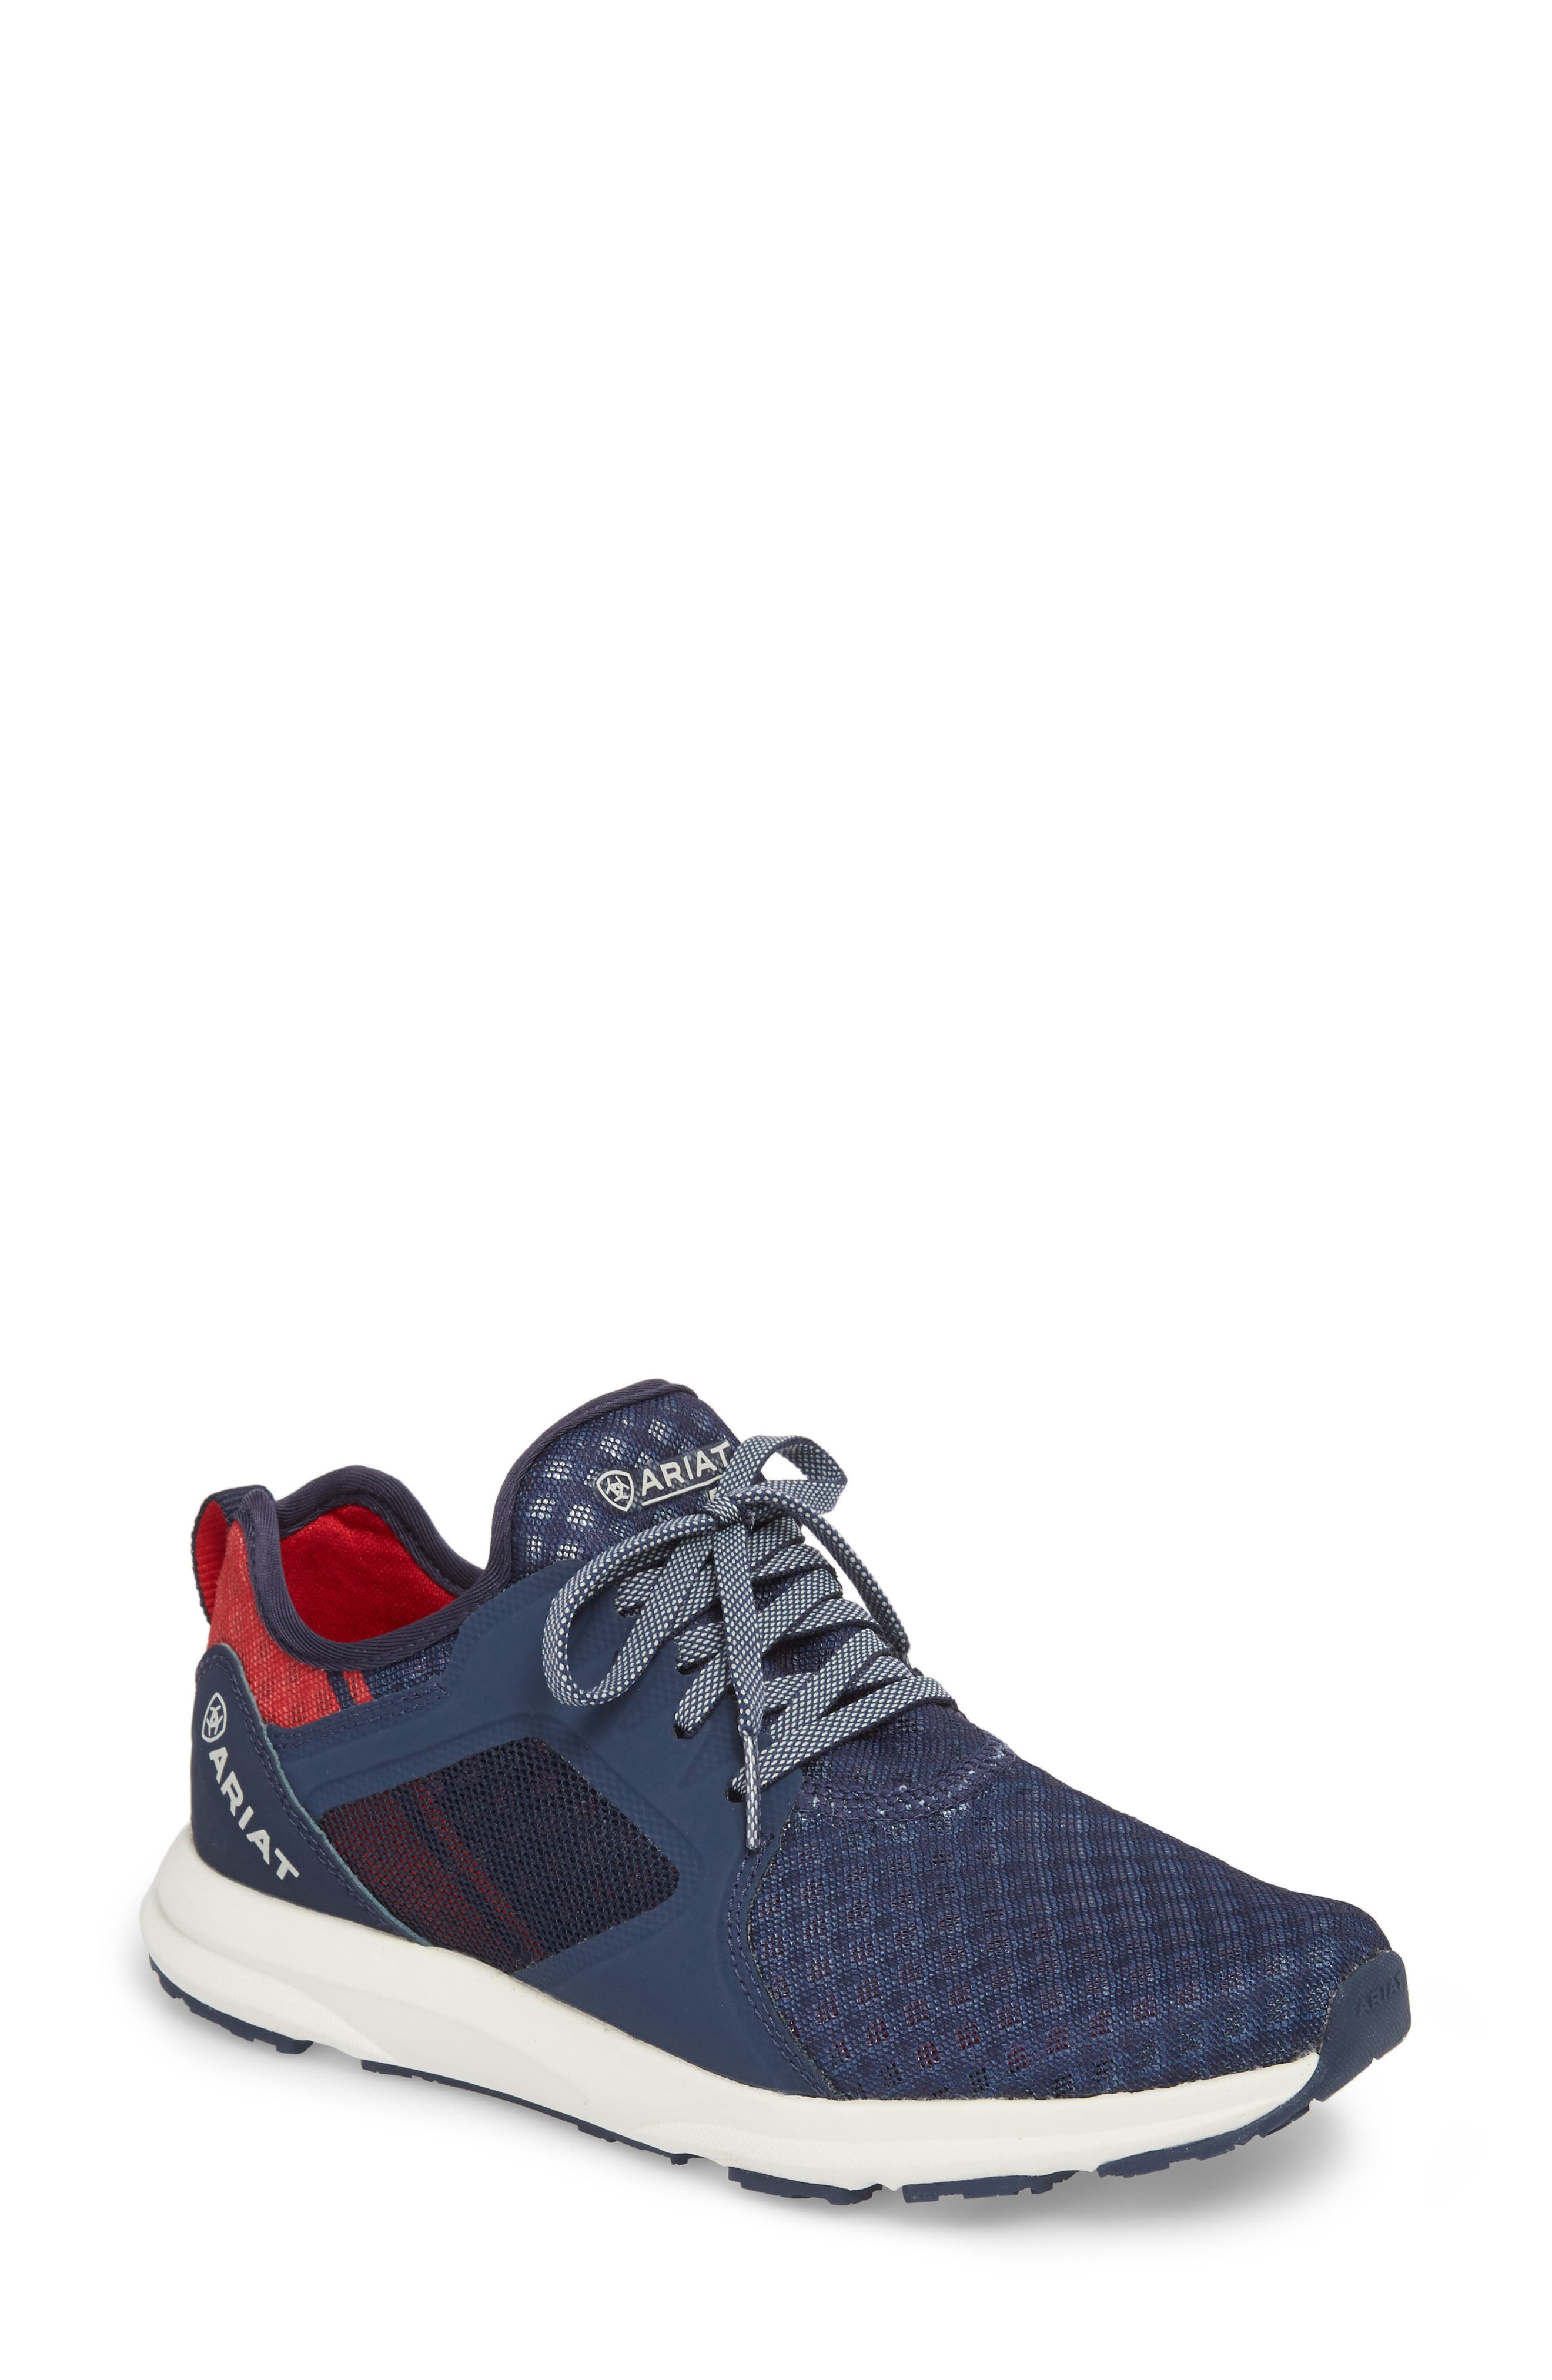 Fuse Print Sneaker,                             Main thumbnail 1, color,                             TEAM NAVY FABRIC